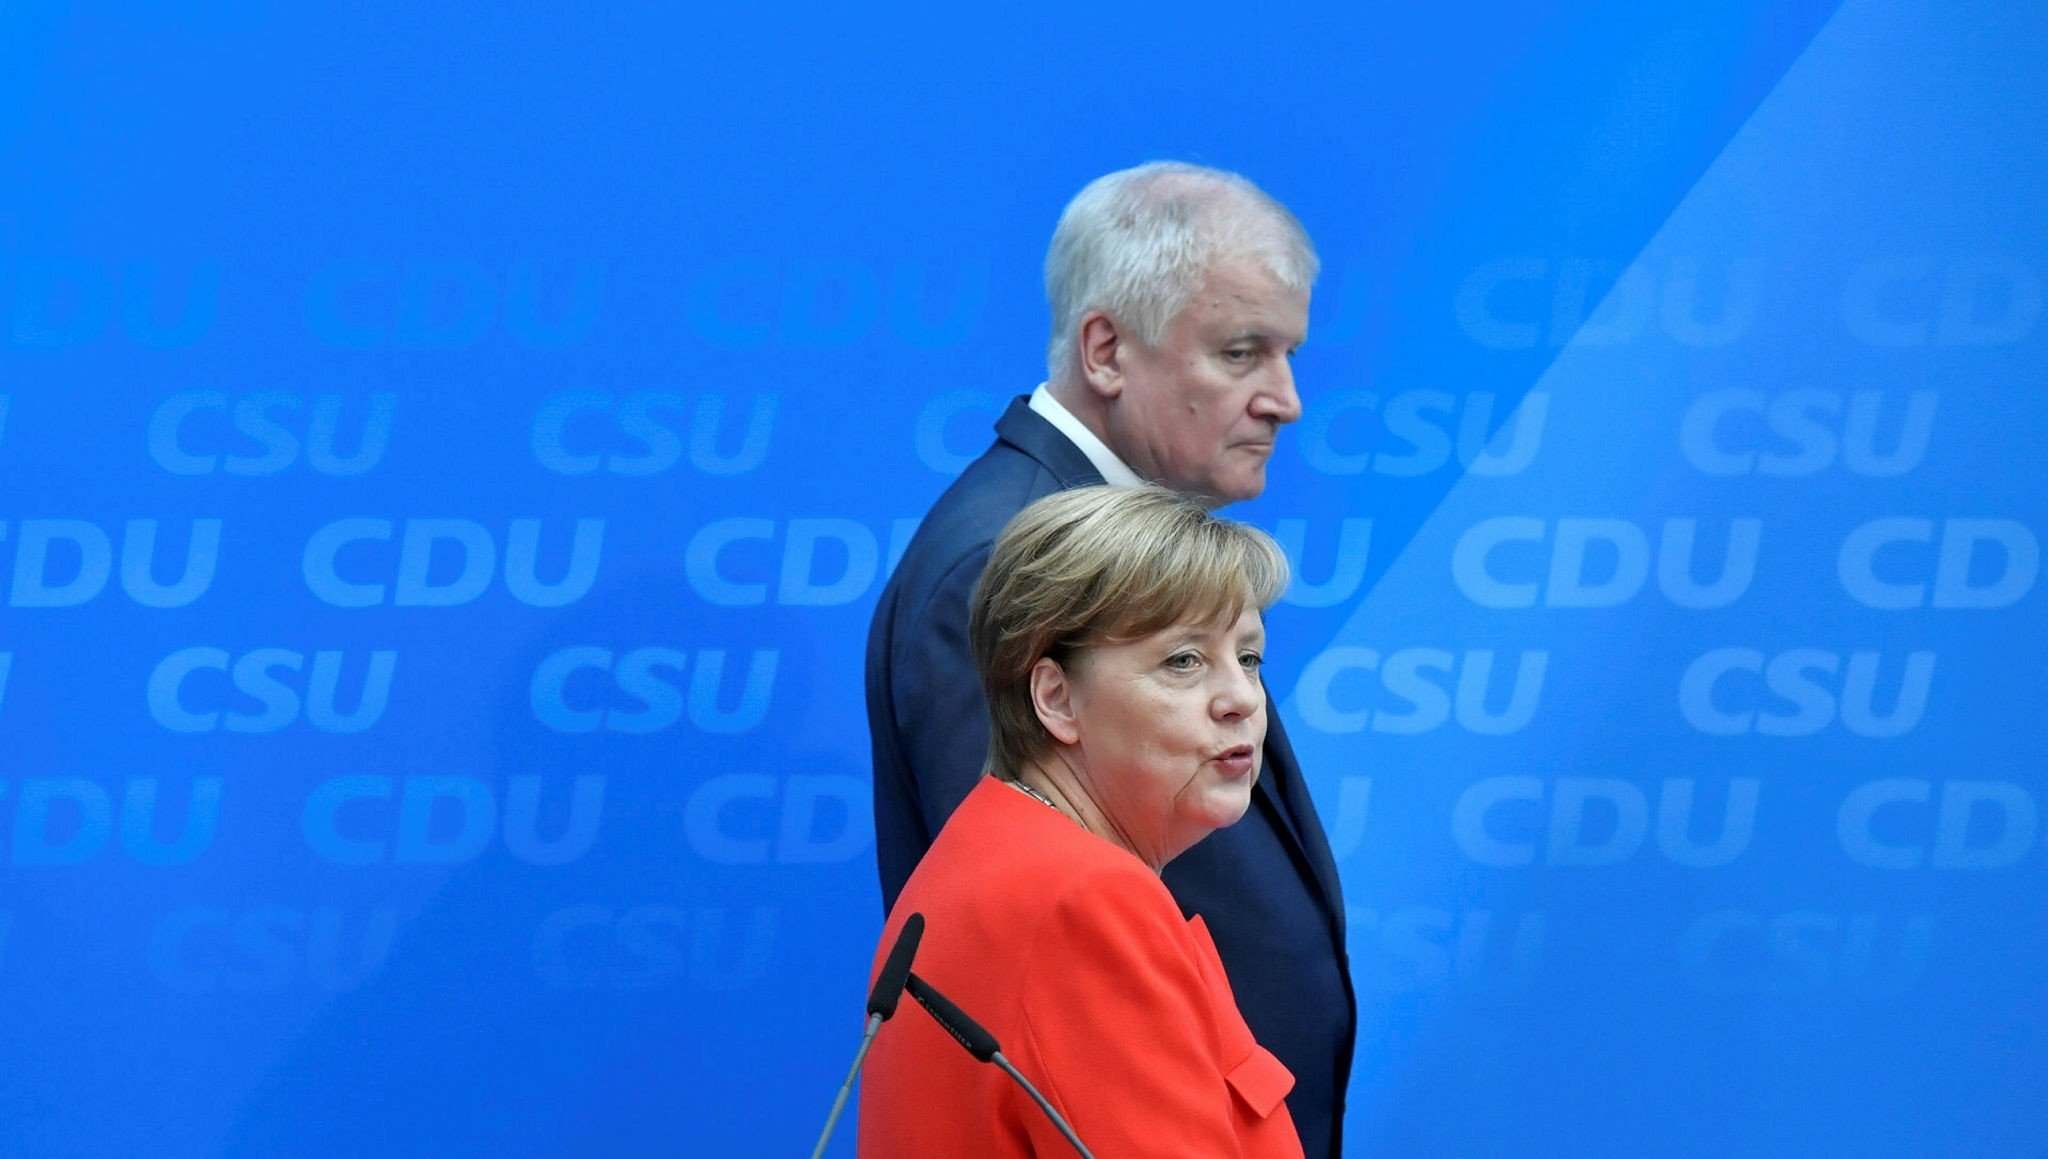 German Chancellor and head of the Christian Democrats party, Angela Merkel and Horst Seehofer, leader of Bavarian sister Party CSU, give a press conference on July 3, 2017 in Berlin (AFP Photo)